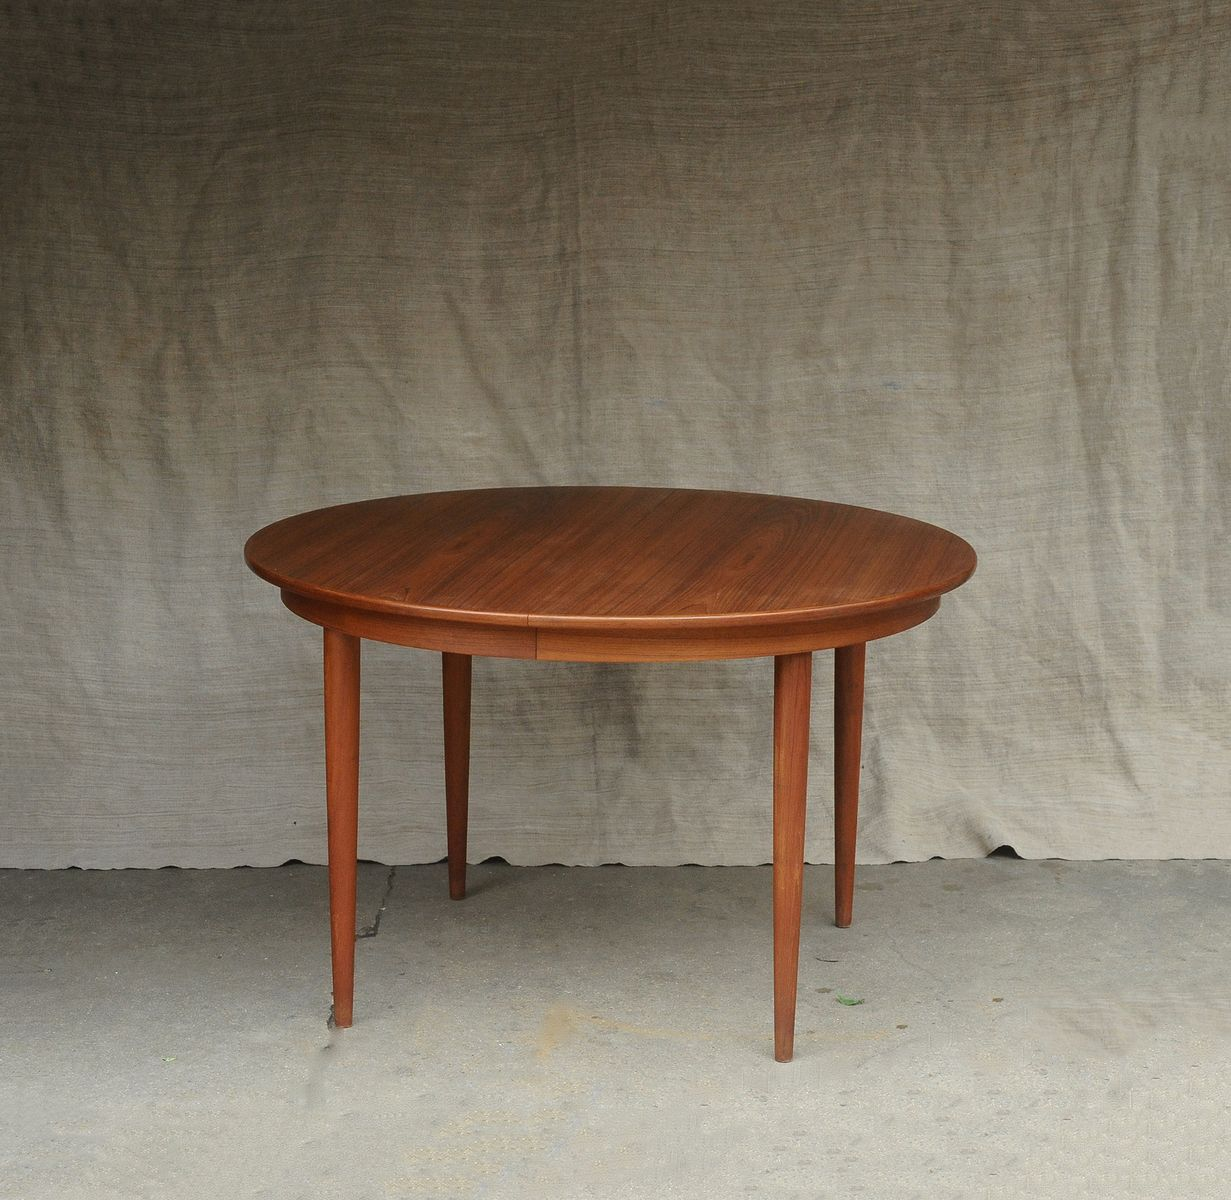 Table ronde extensible mid century scandinave en vente sur for Table ronde extensible scandinave